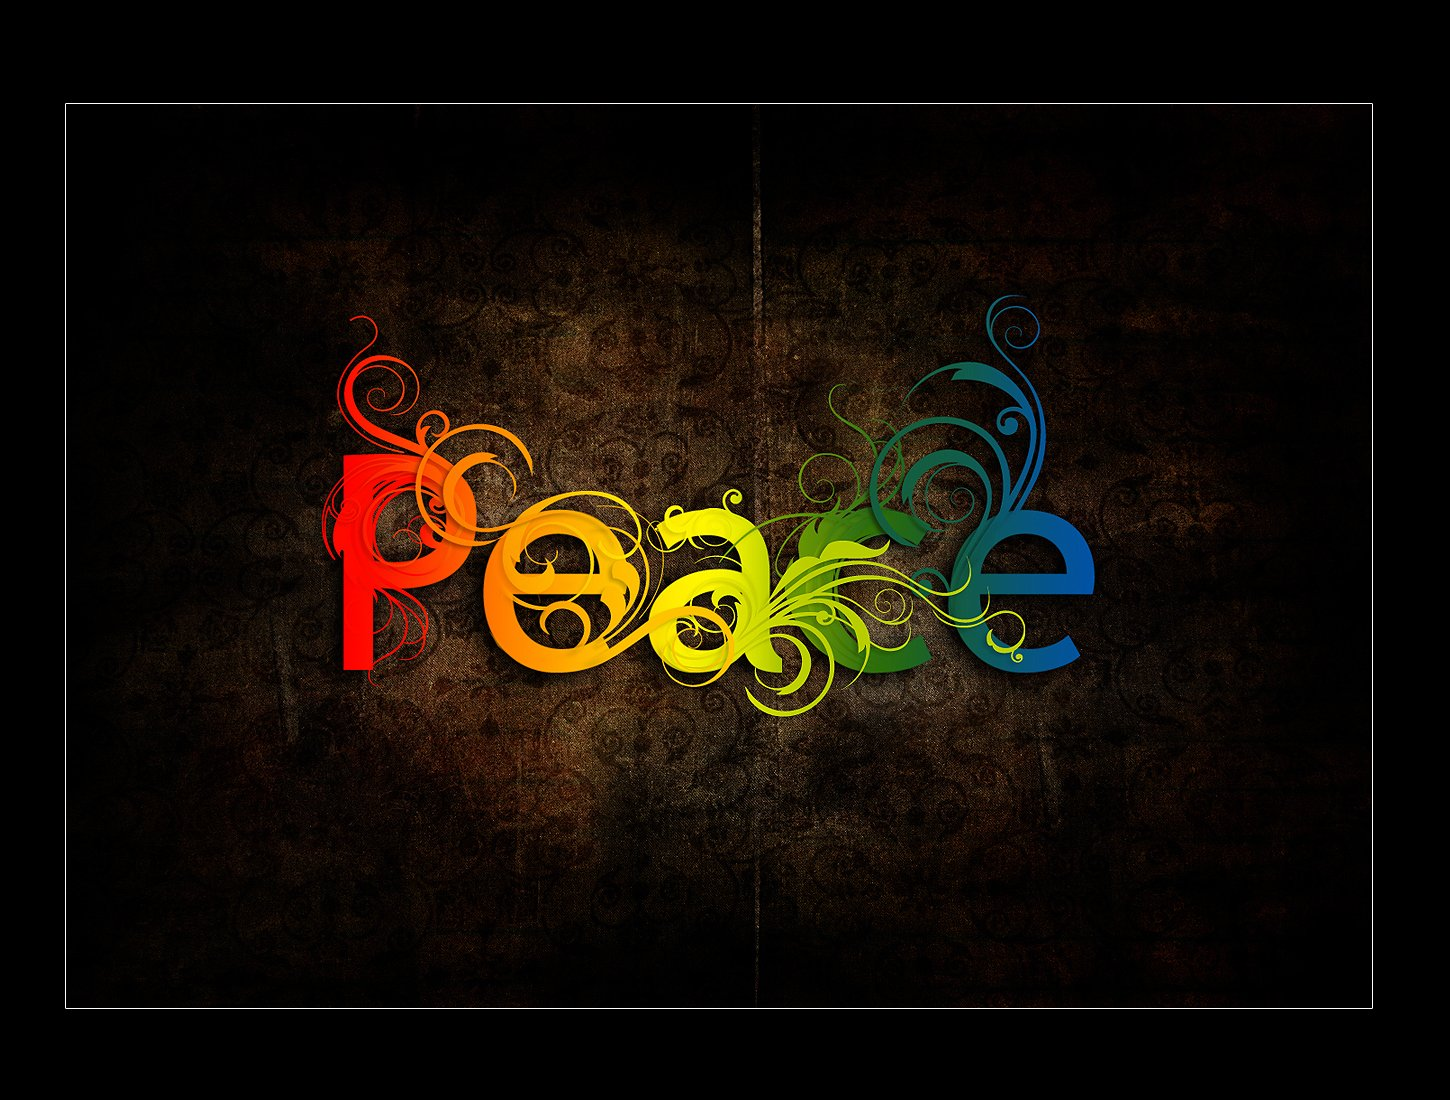 The Word Peace Colorful   wallpaper 1450x1100